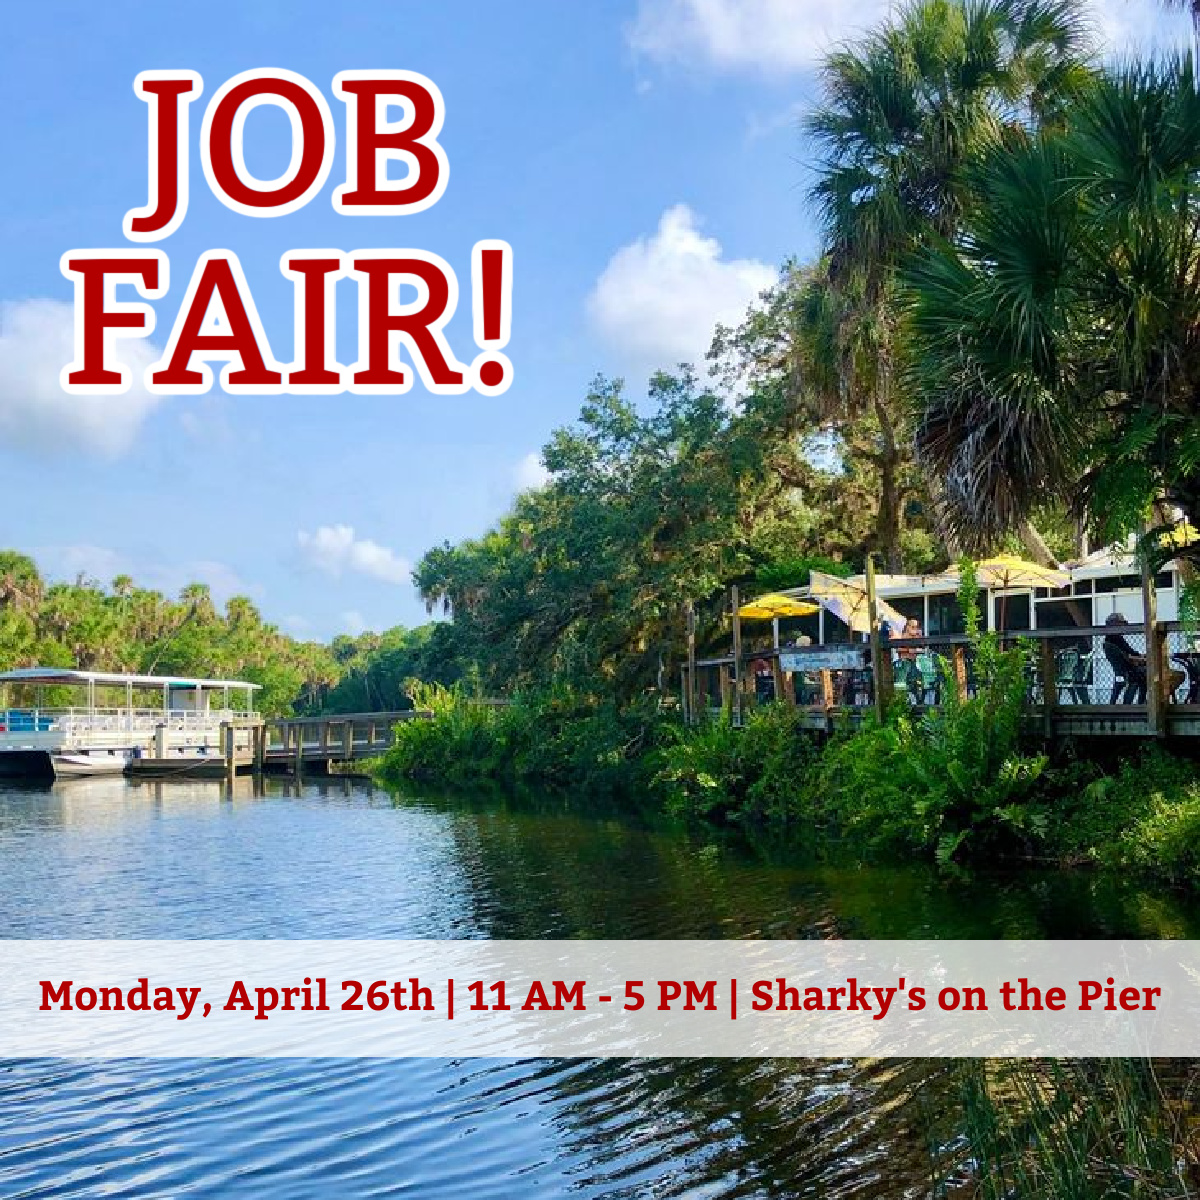 Sharky's, Fins and Snook Haven to Host April Job Fair